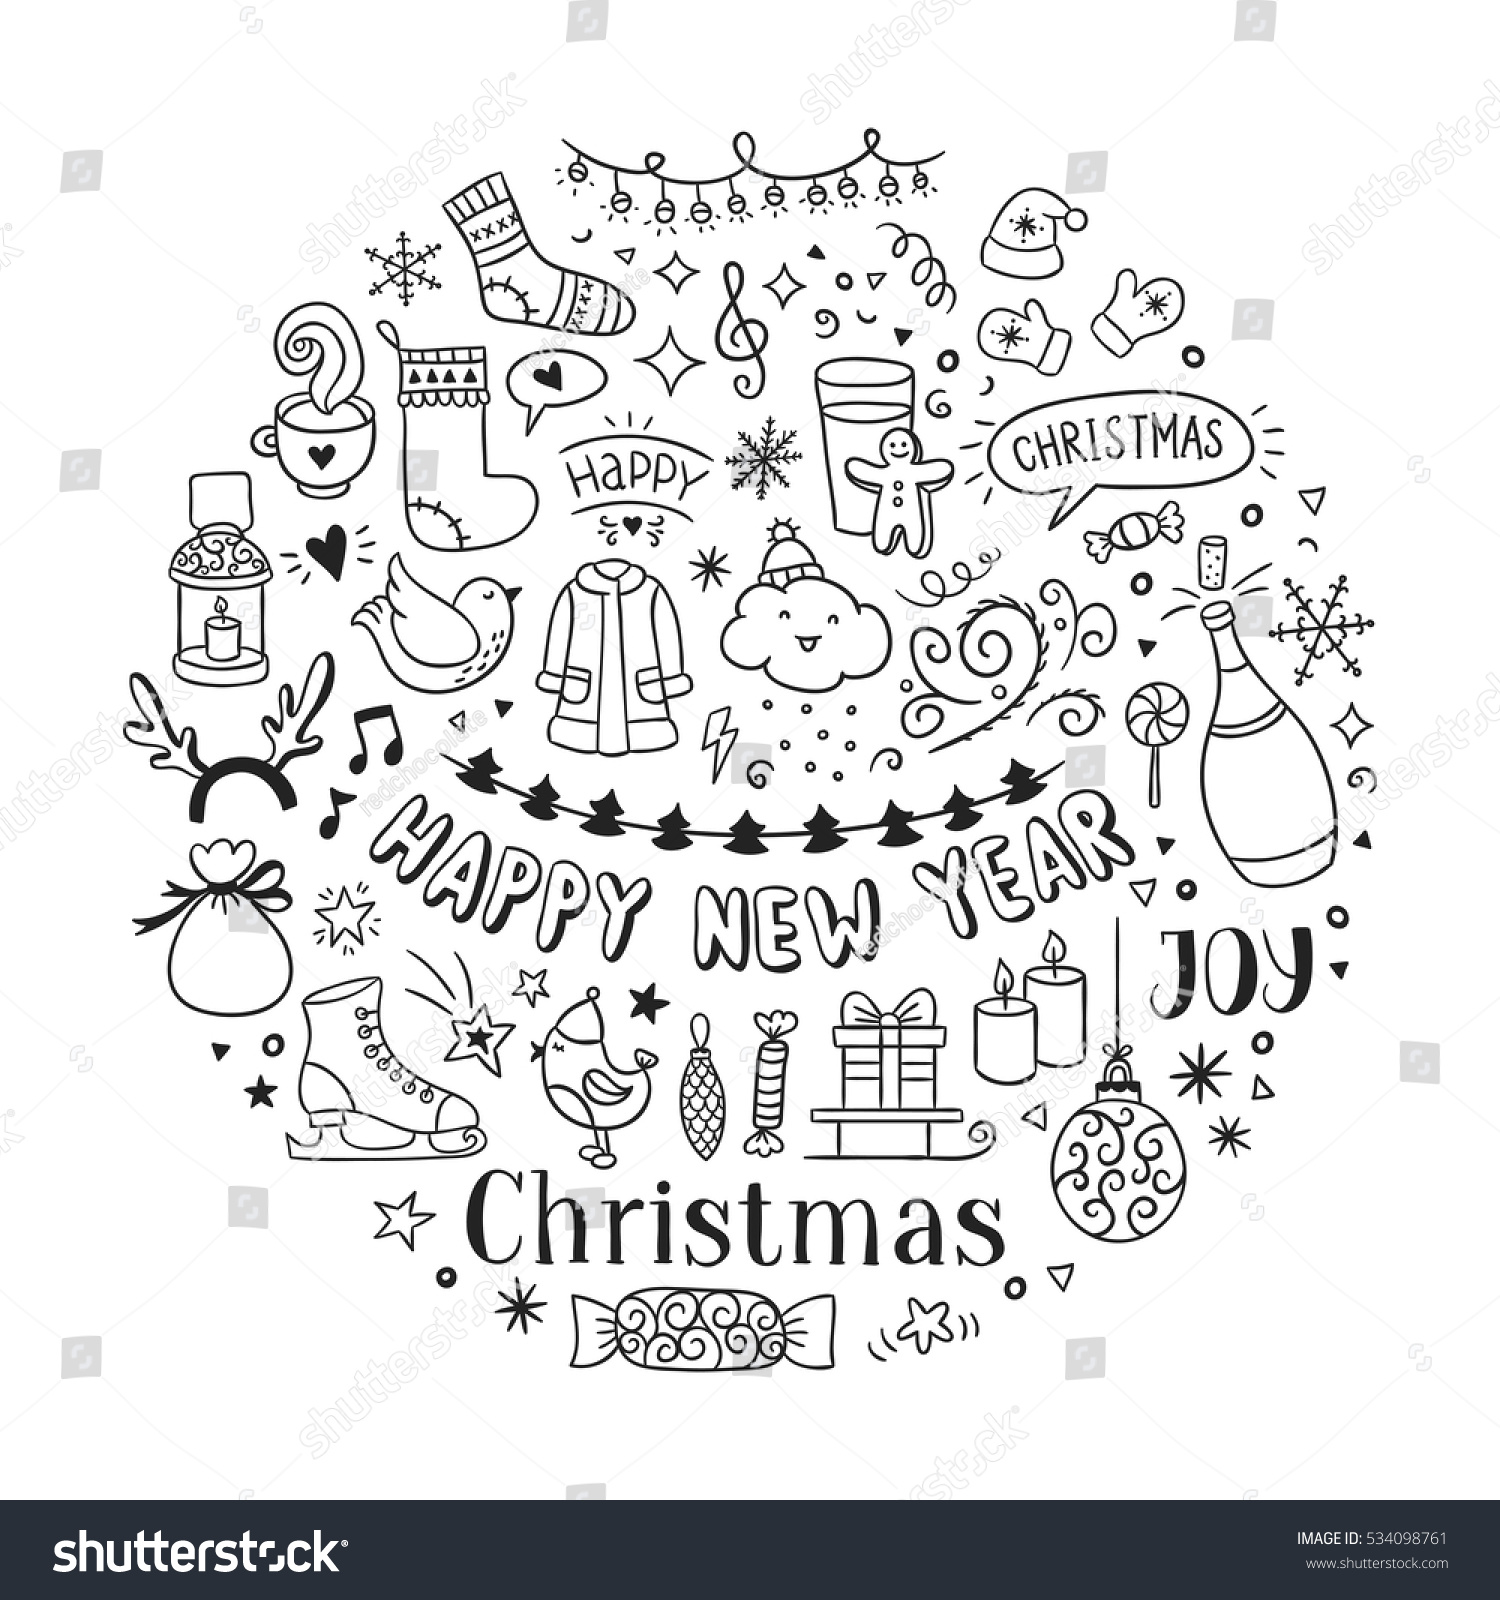 Hand drawn Christmas and New Year icons and doodles Seasons greetings sketch illustrations